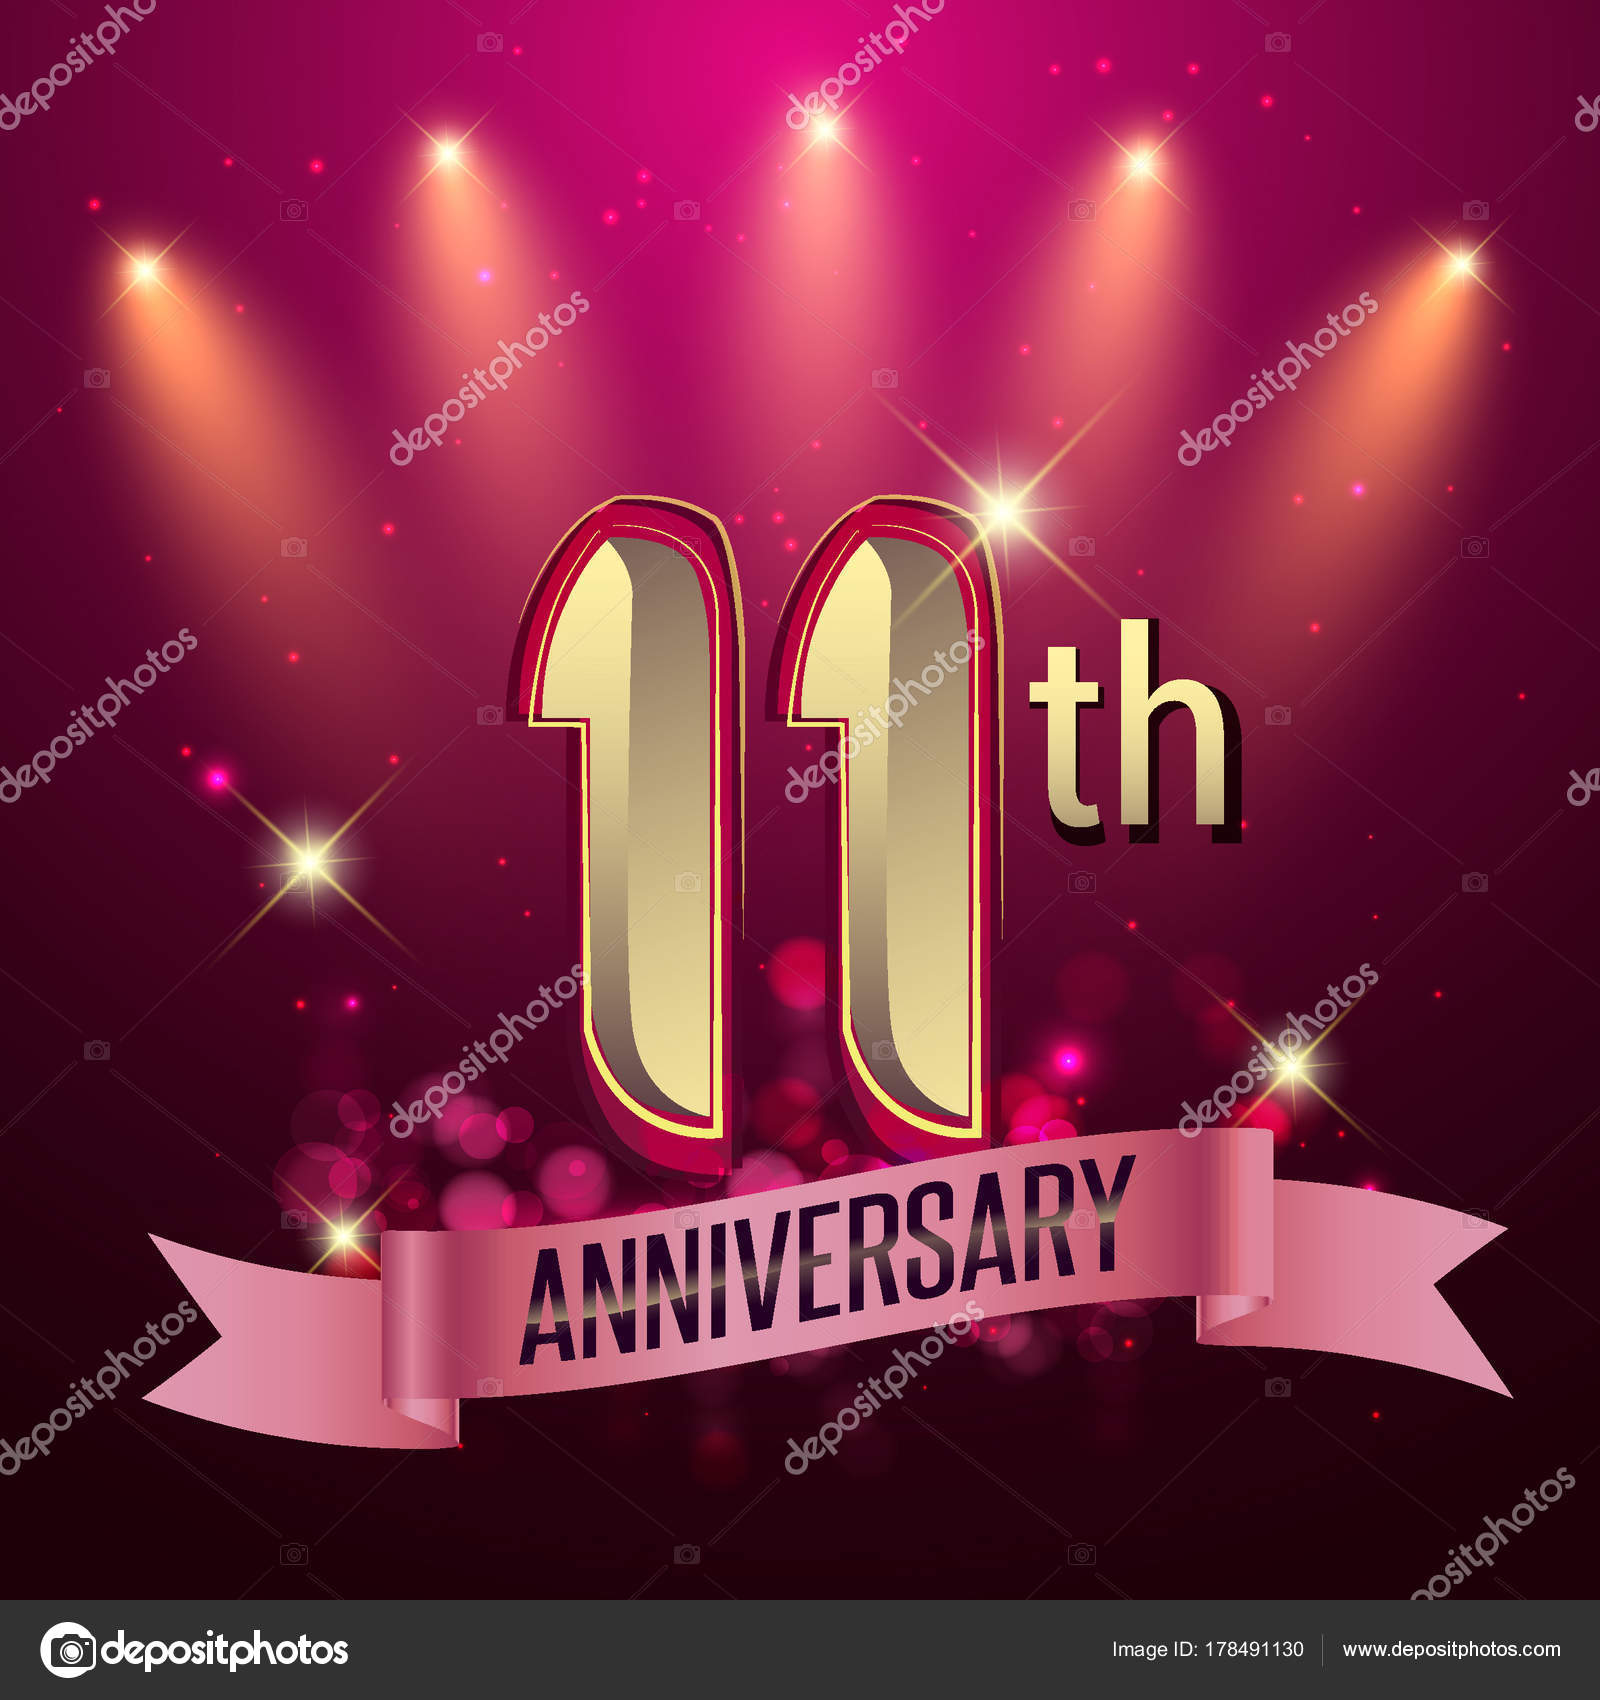 11th anniversary party poster banner invitation background glowing